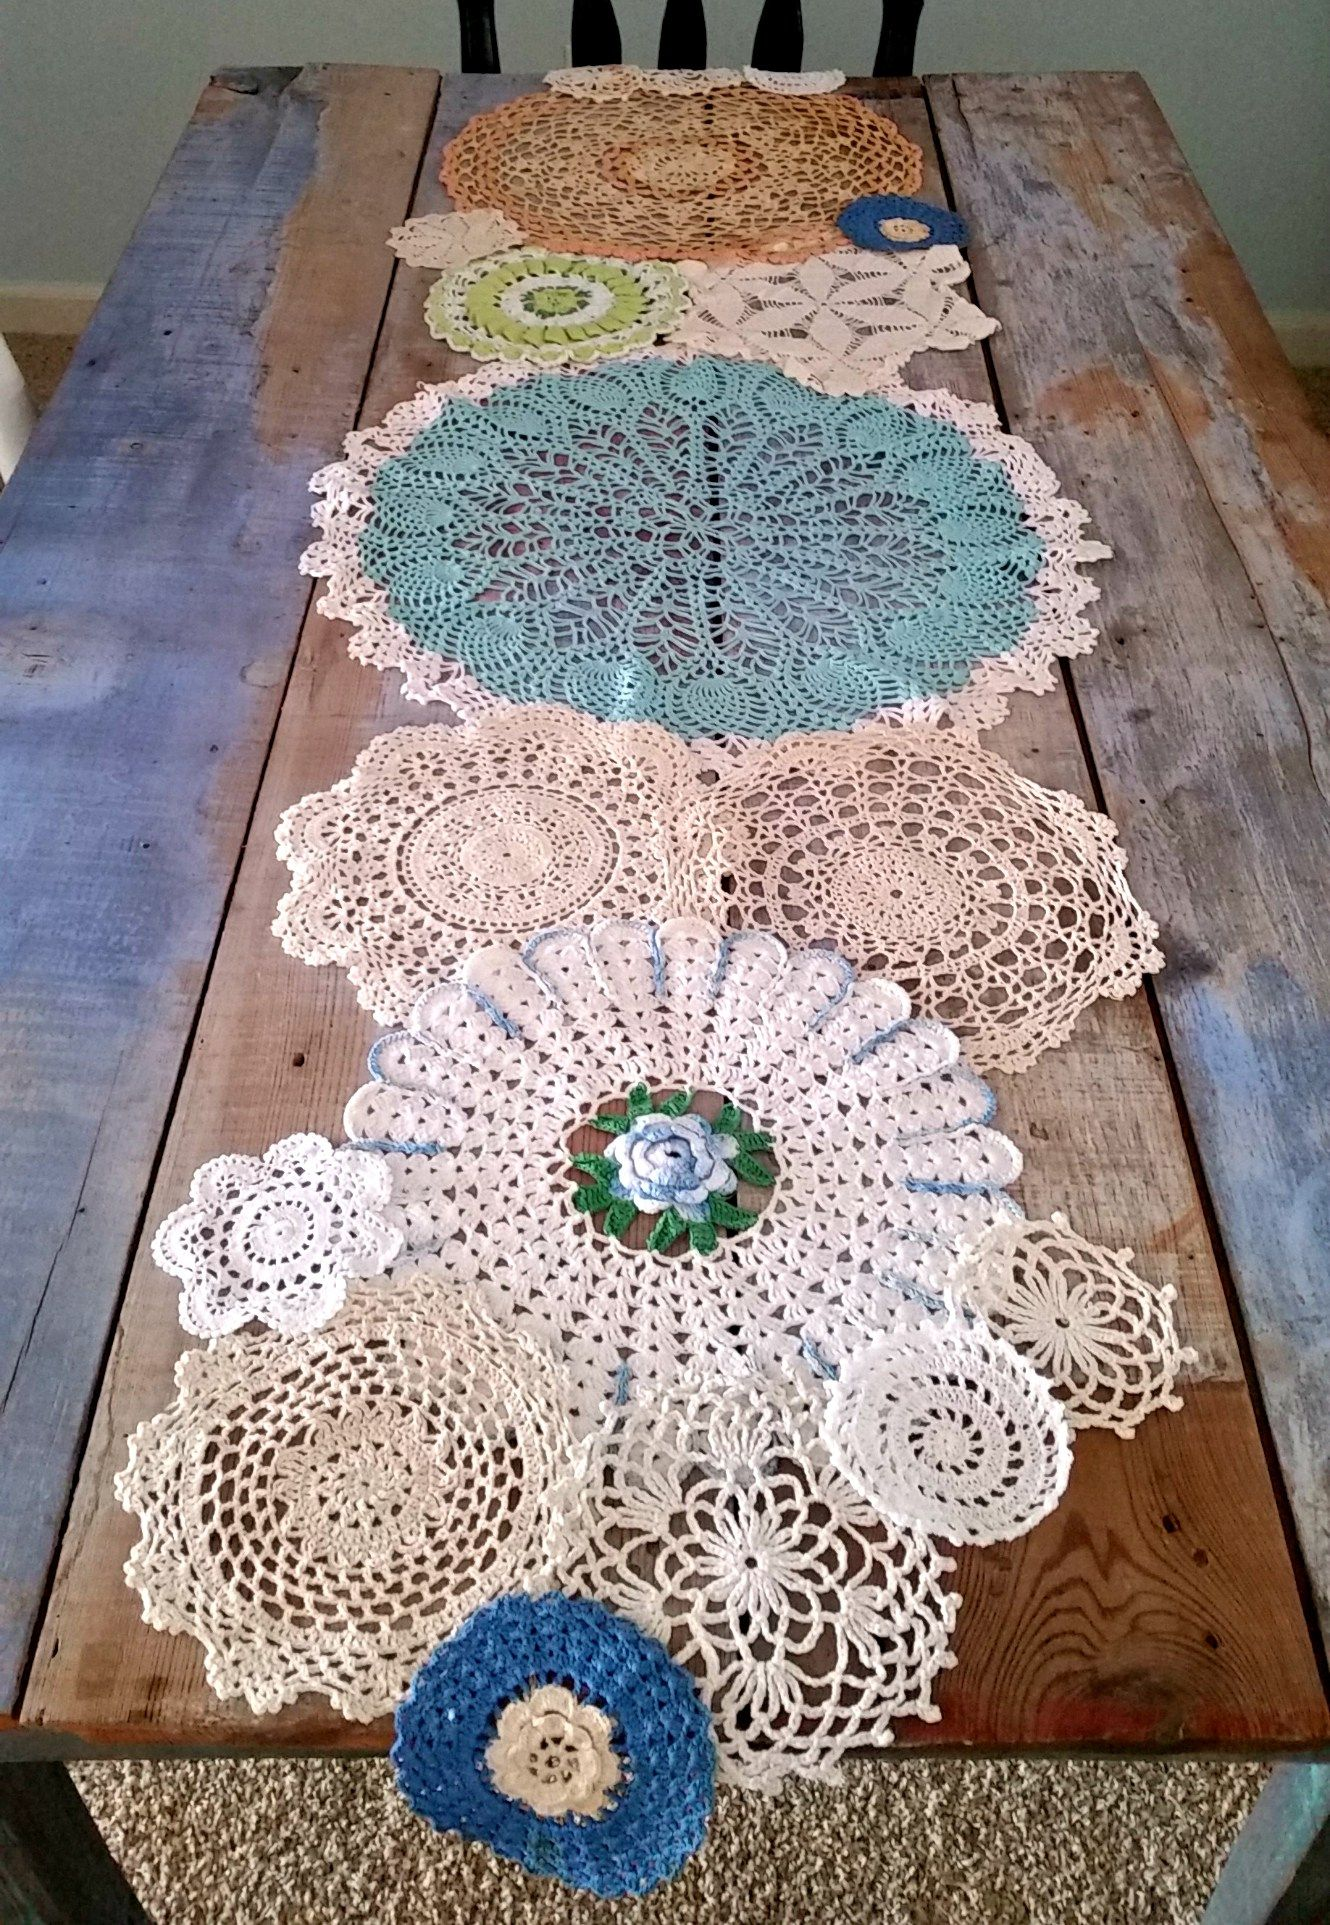 Pastel Dyed Vintage Doily Table Runner for Spring | Häkeln ...